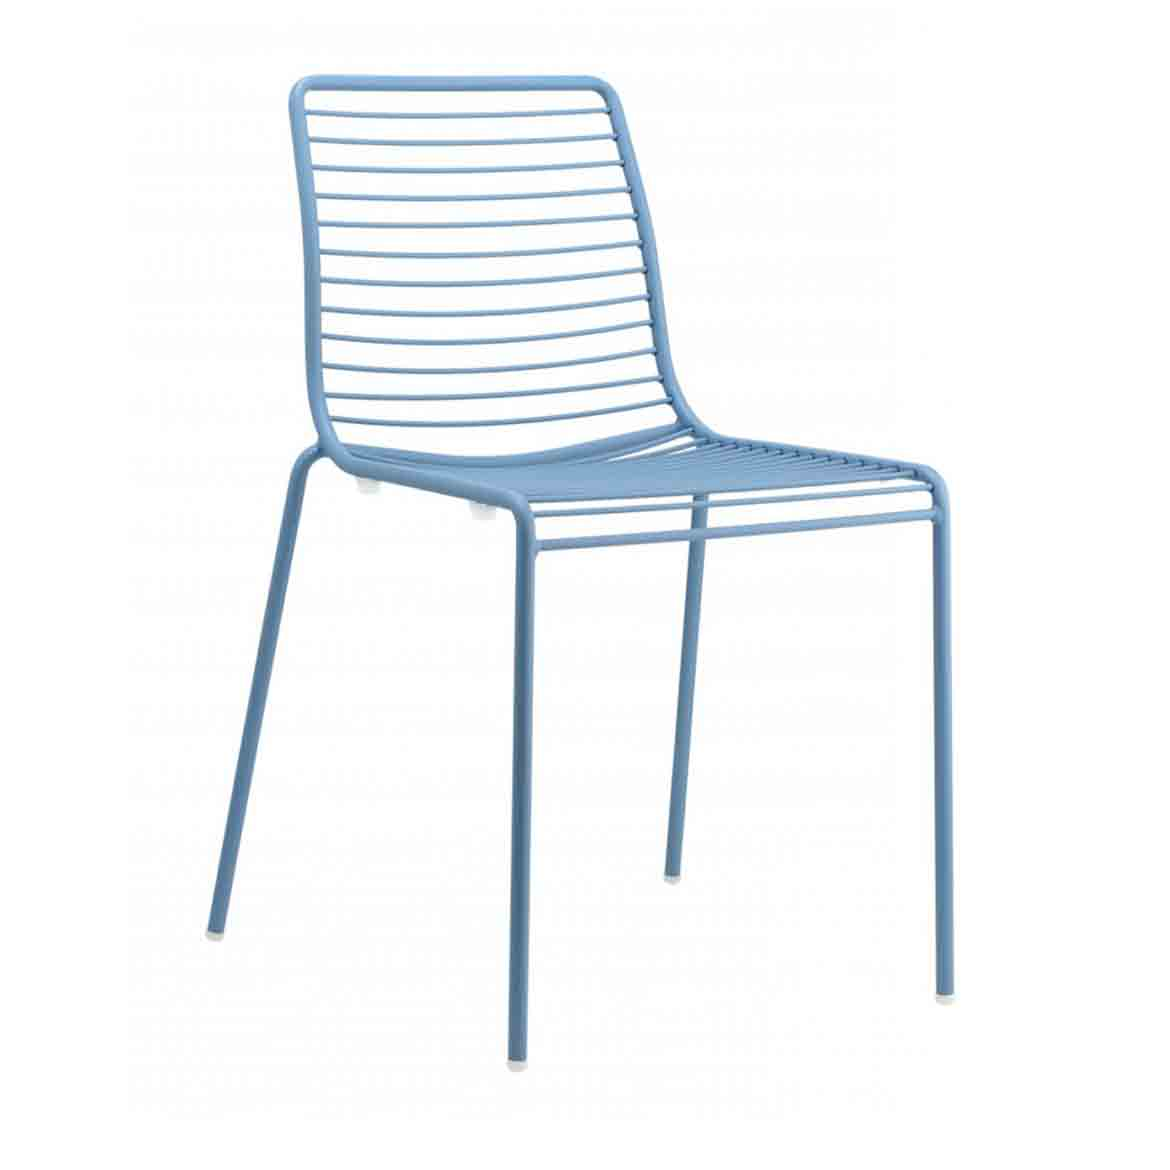 Galvanized, polyester powder-coated steel avaliable in different colors. Seat cushion is avaliable.